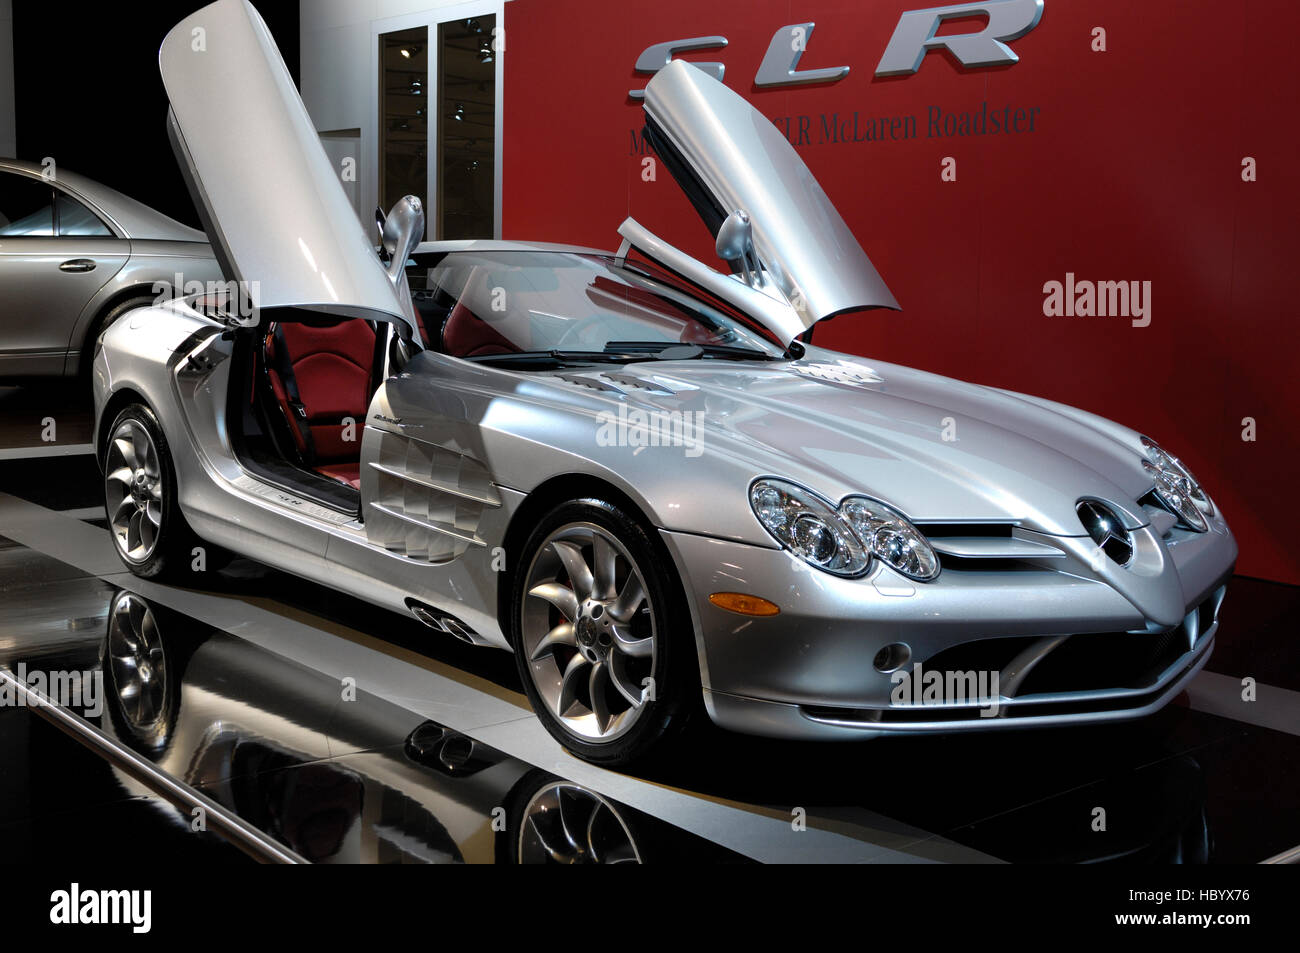 Mercedes benz slr mclaren roadster anglo german sports car toronto auto show 2008 canada